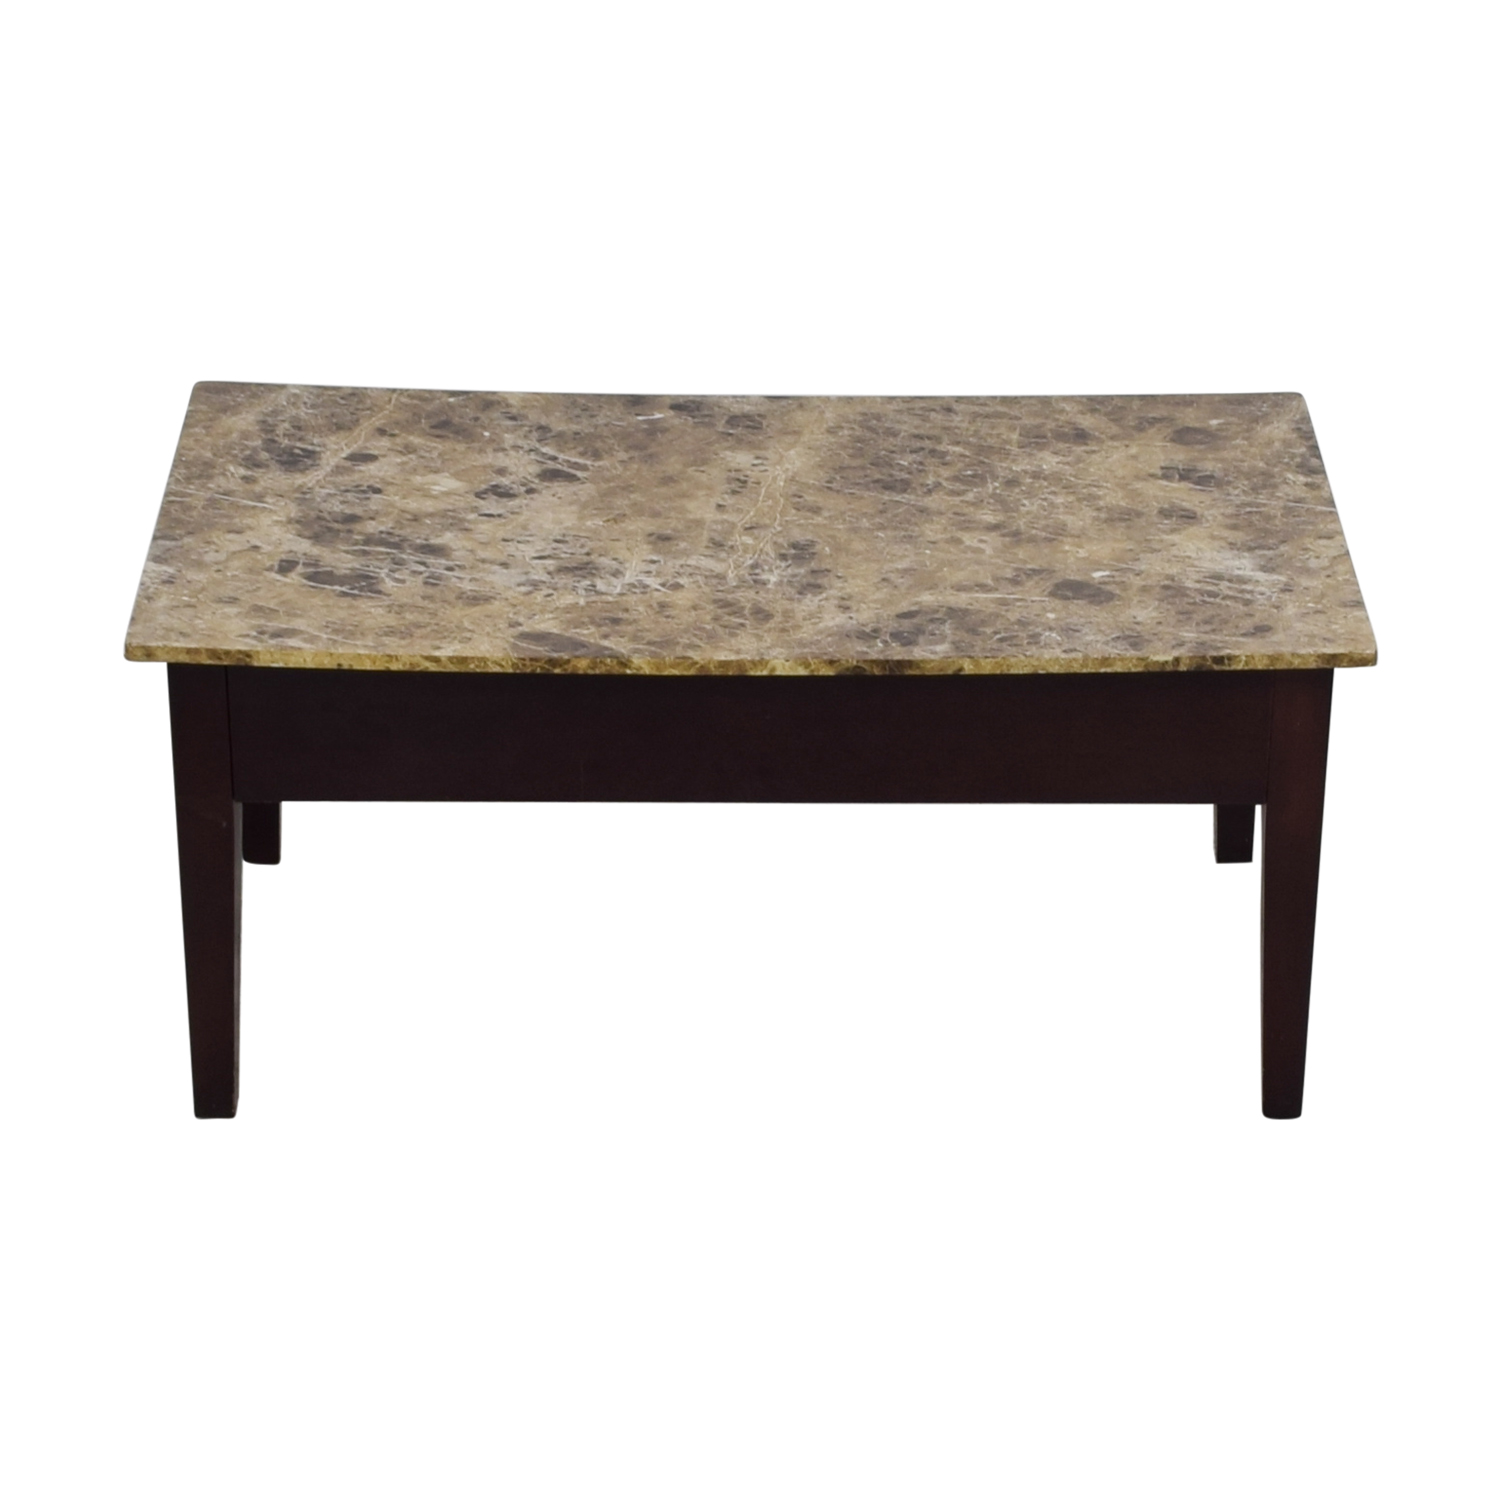 Faux Marble Top Coffee Table With Storage second hand